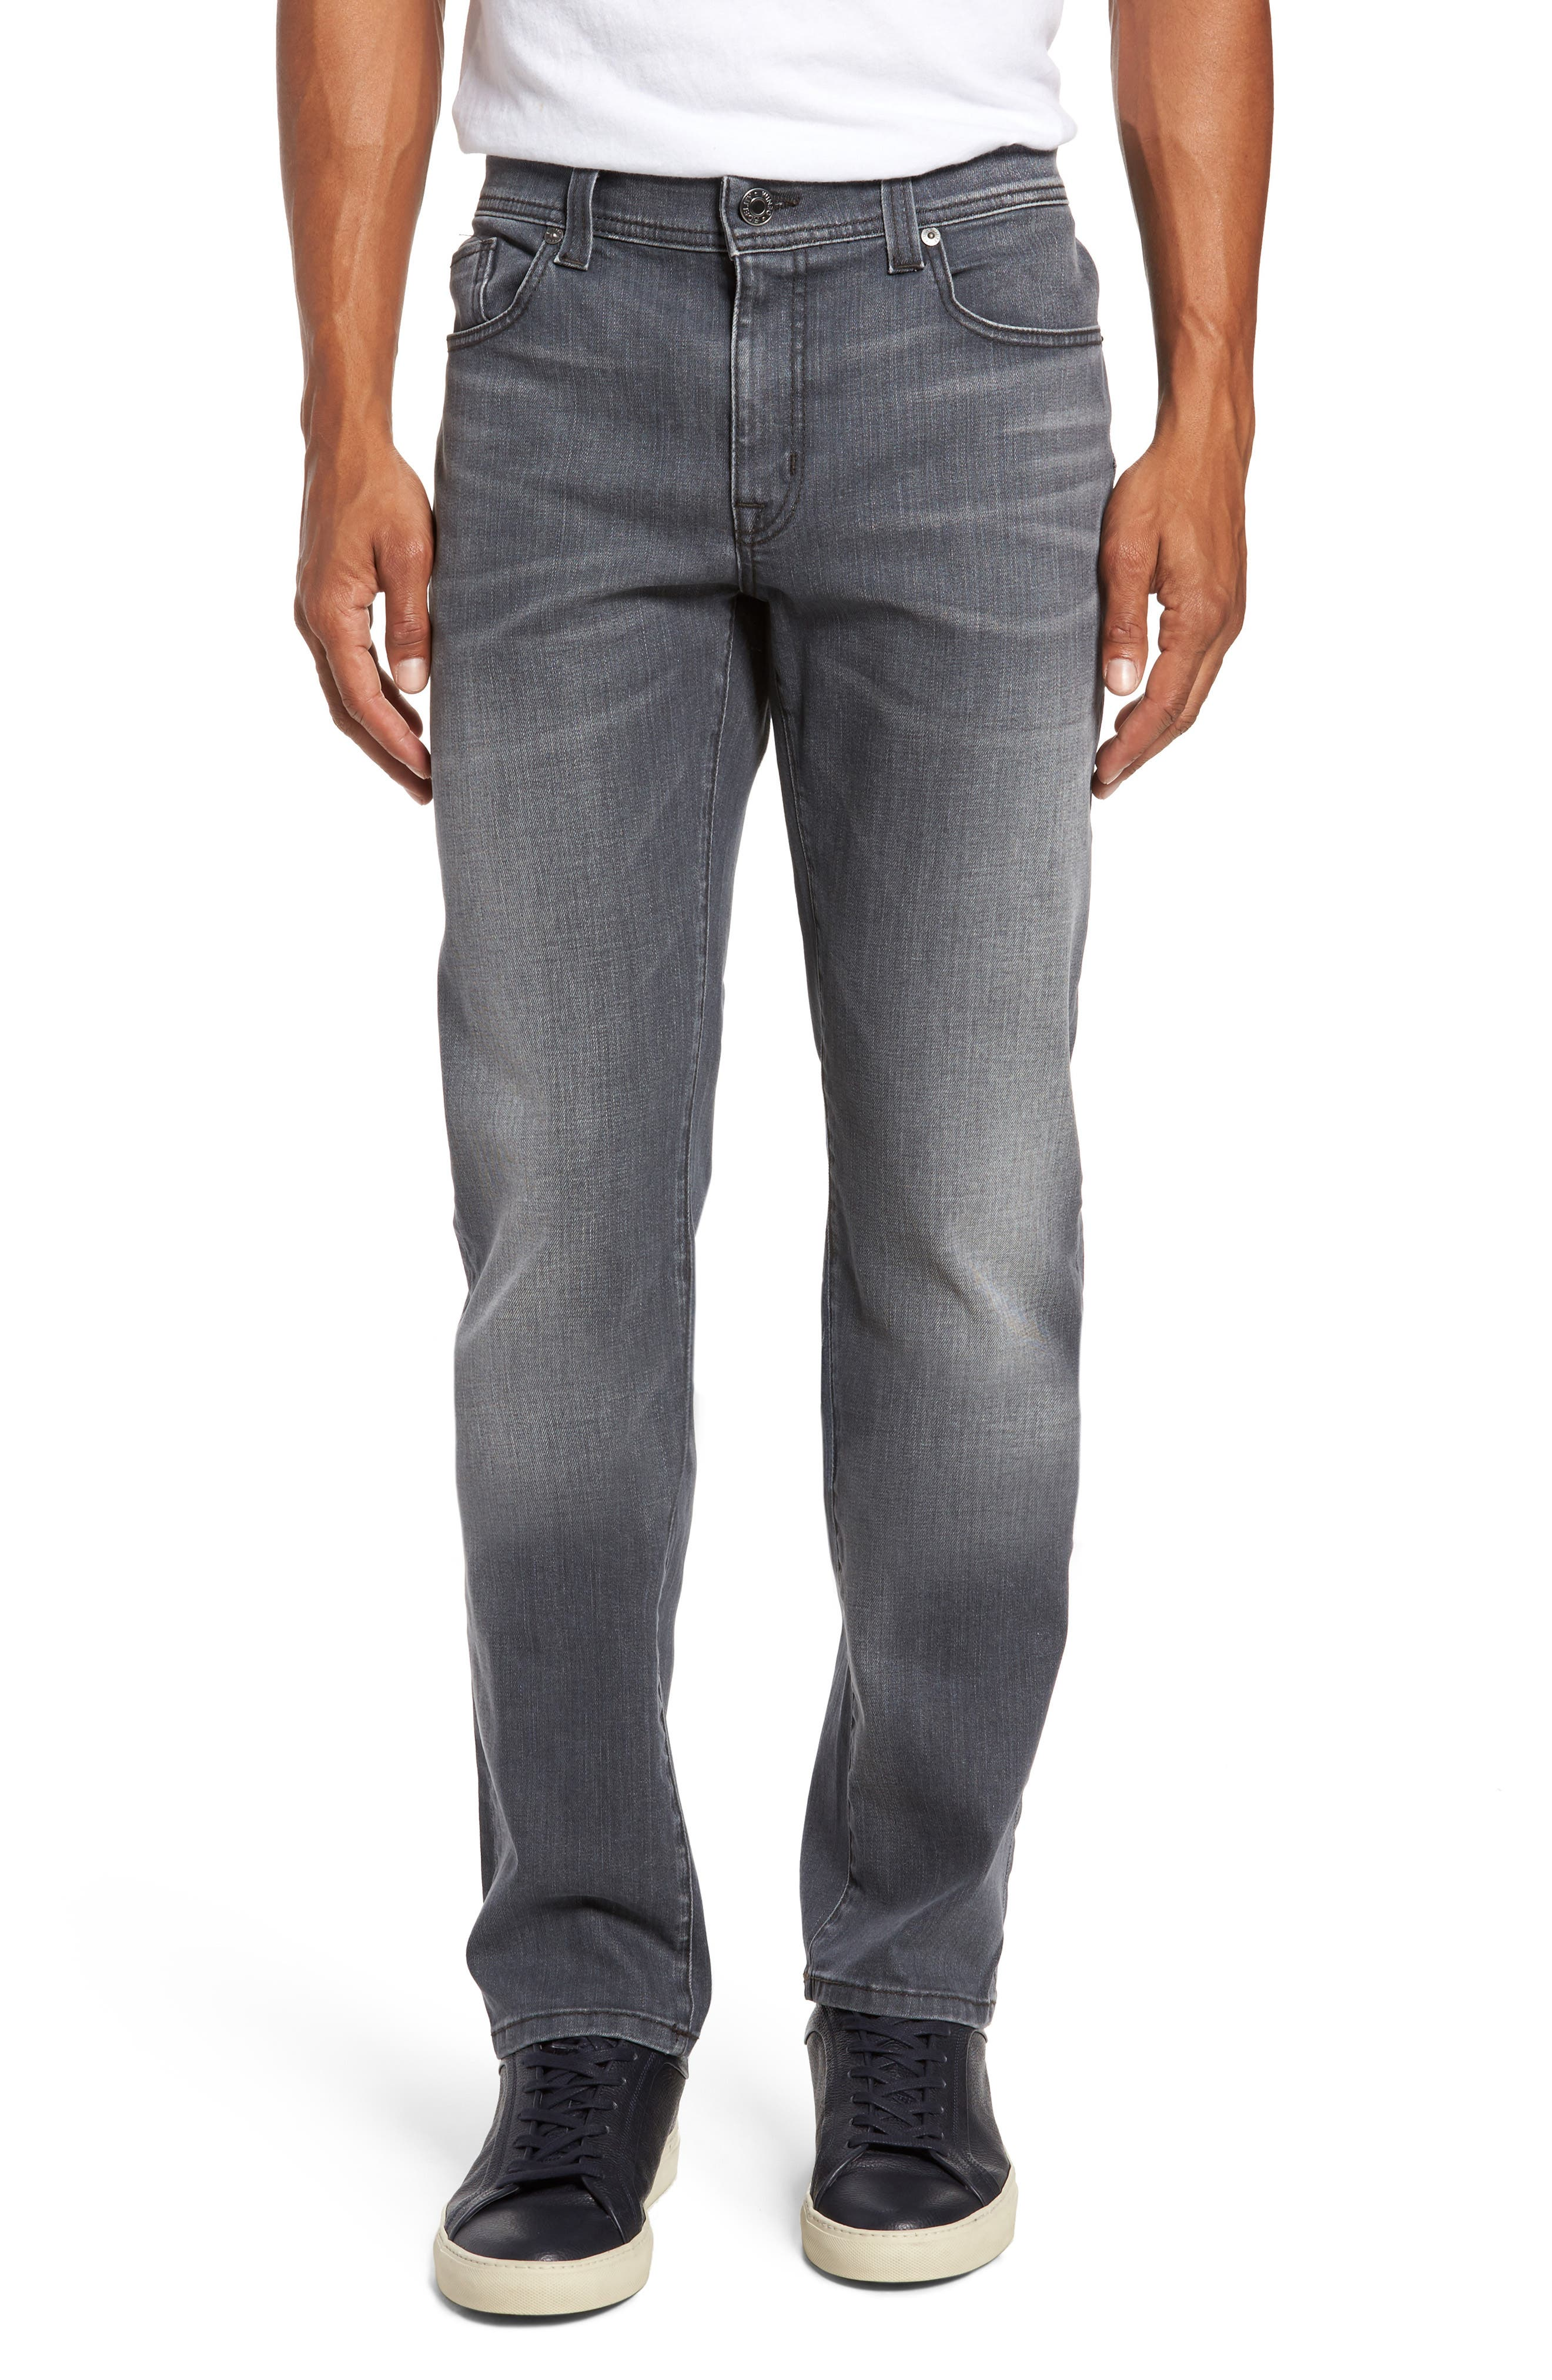 Jimmy Slim Straight Fit Jeans,                         Main,                         color, 020